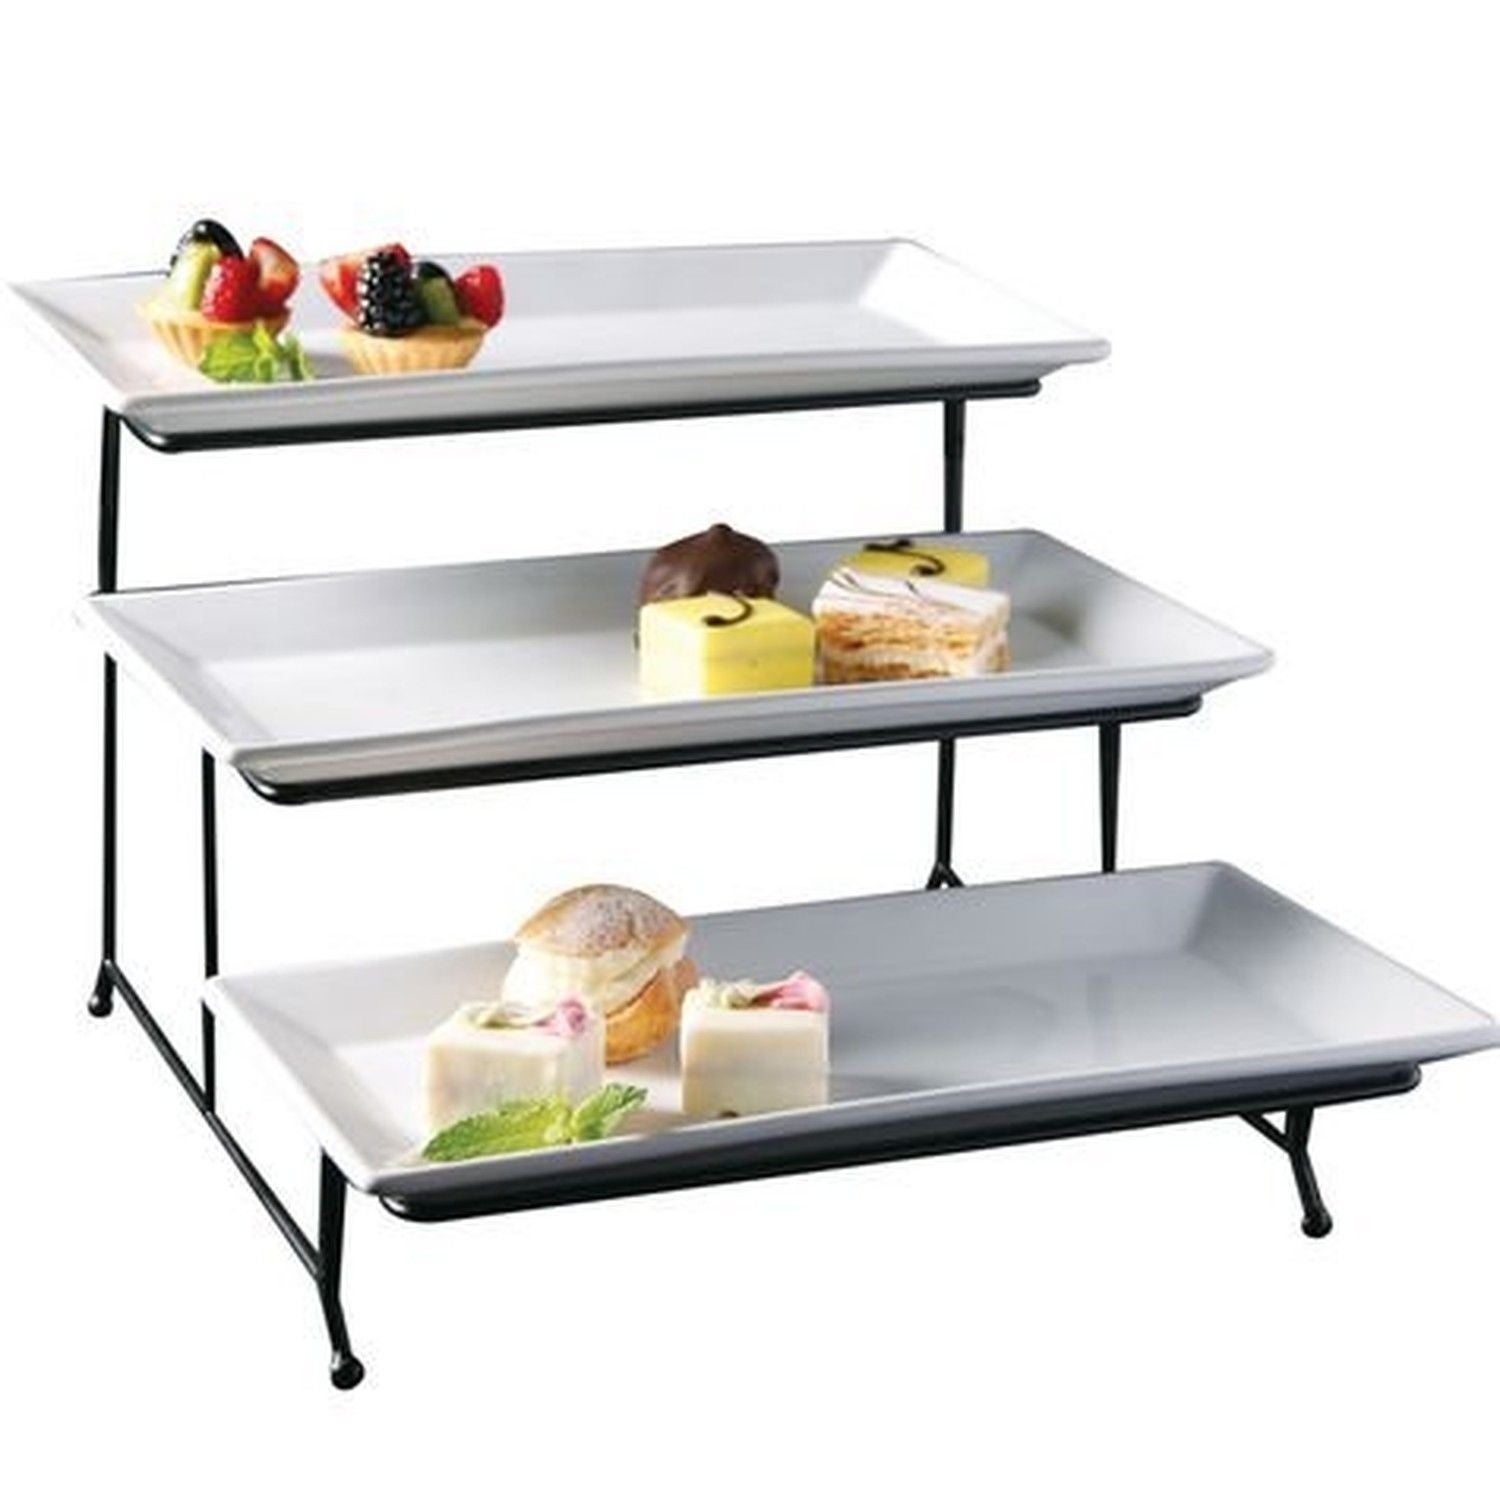 Imperial Home Porcelain 3 Tier Serving Tray - Rectangular...